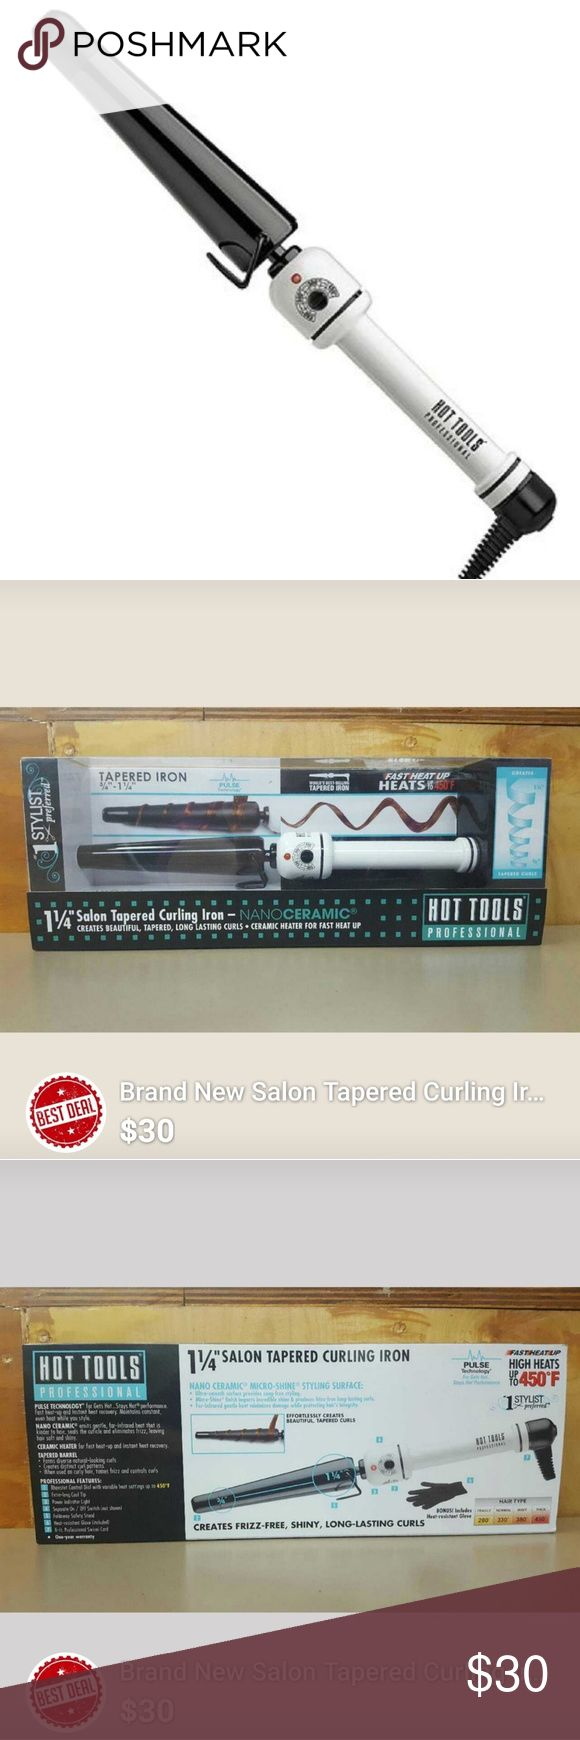 Brand New Hot Tools Curing Iron. Brand new Hot Tools professional tapered curling iron. Nanoceramic and heats up to 450 degrees. Creates frizz-free, shiny, long lasting curls. Cross selling. 💕 Valentine's Sale 💕 Hot Tools Other